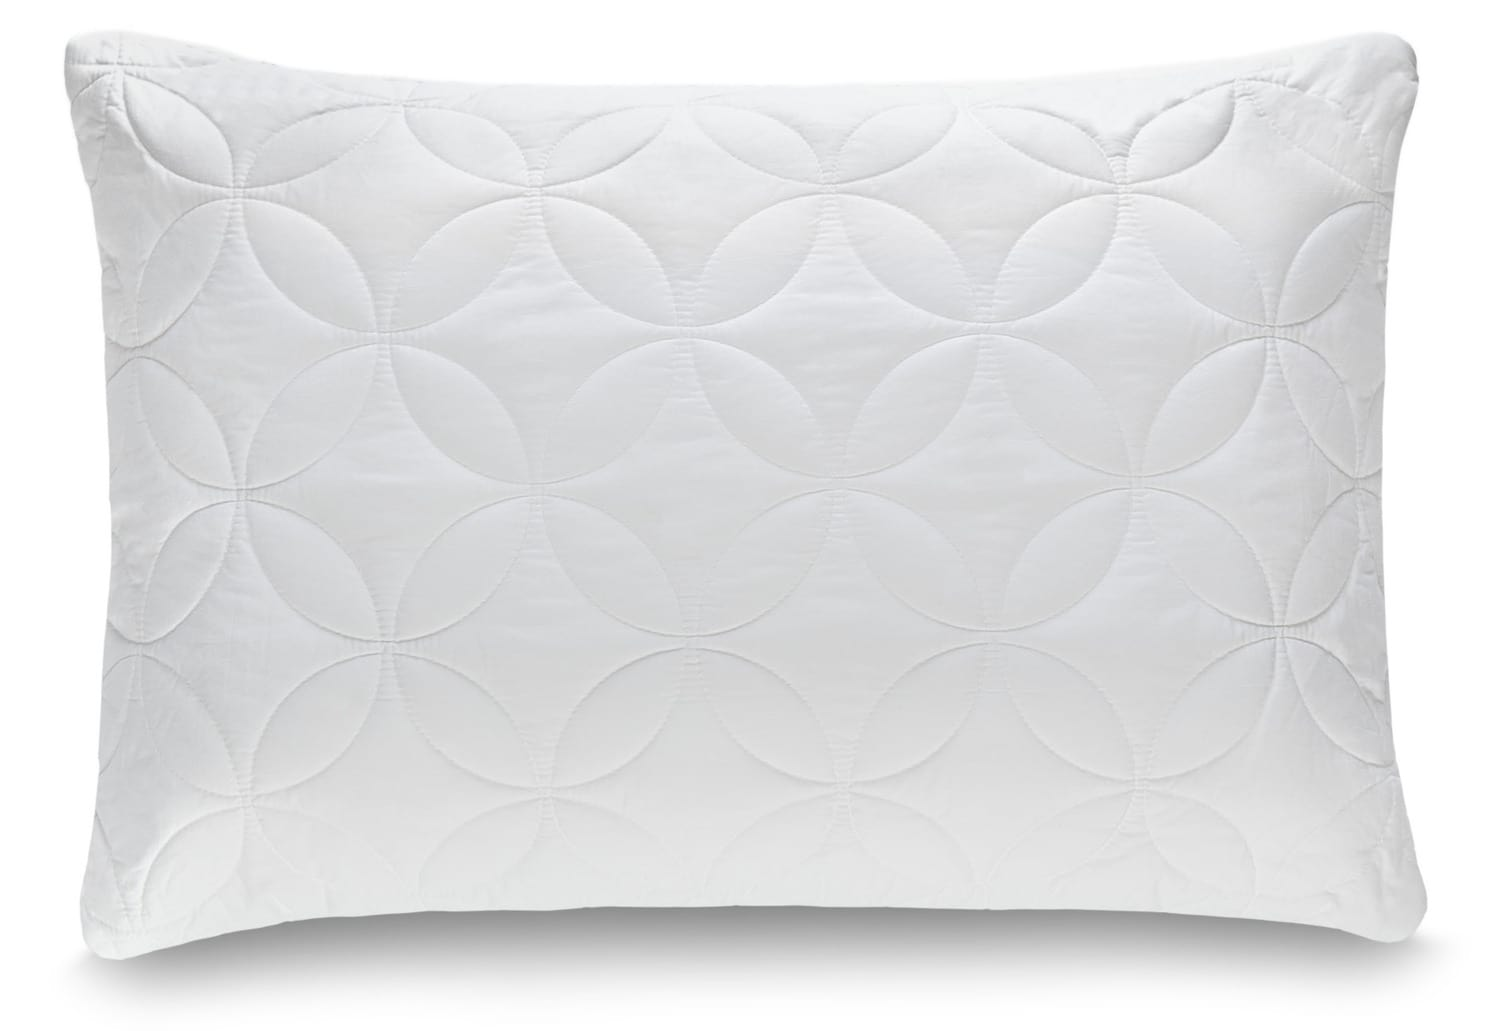 tempurpedic soft and conforming king size pillow